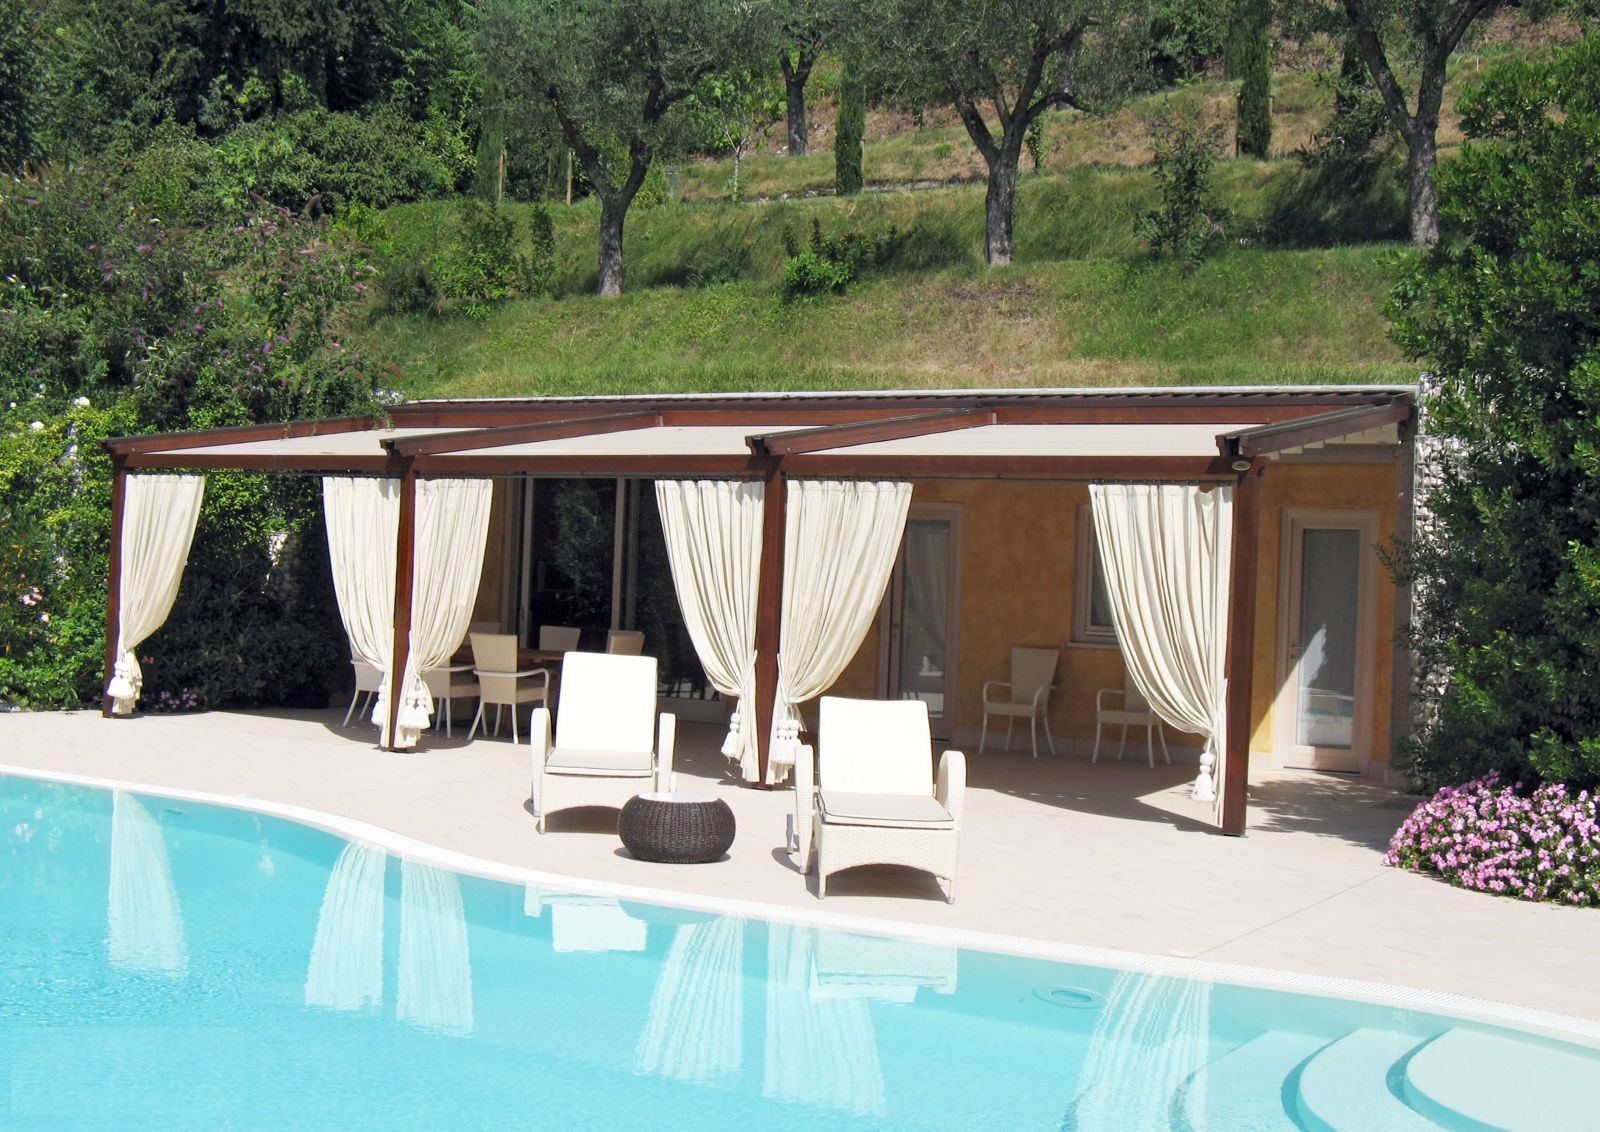 Wood Plus Pergola By Pool.jpg